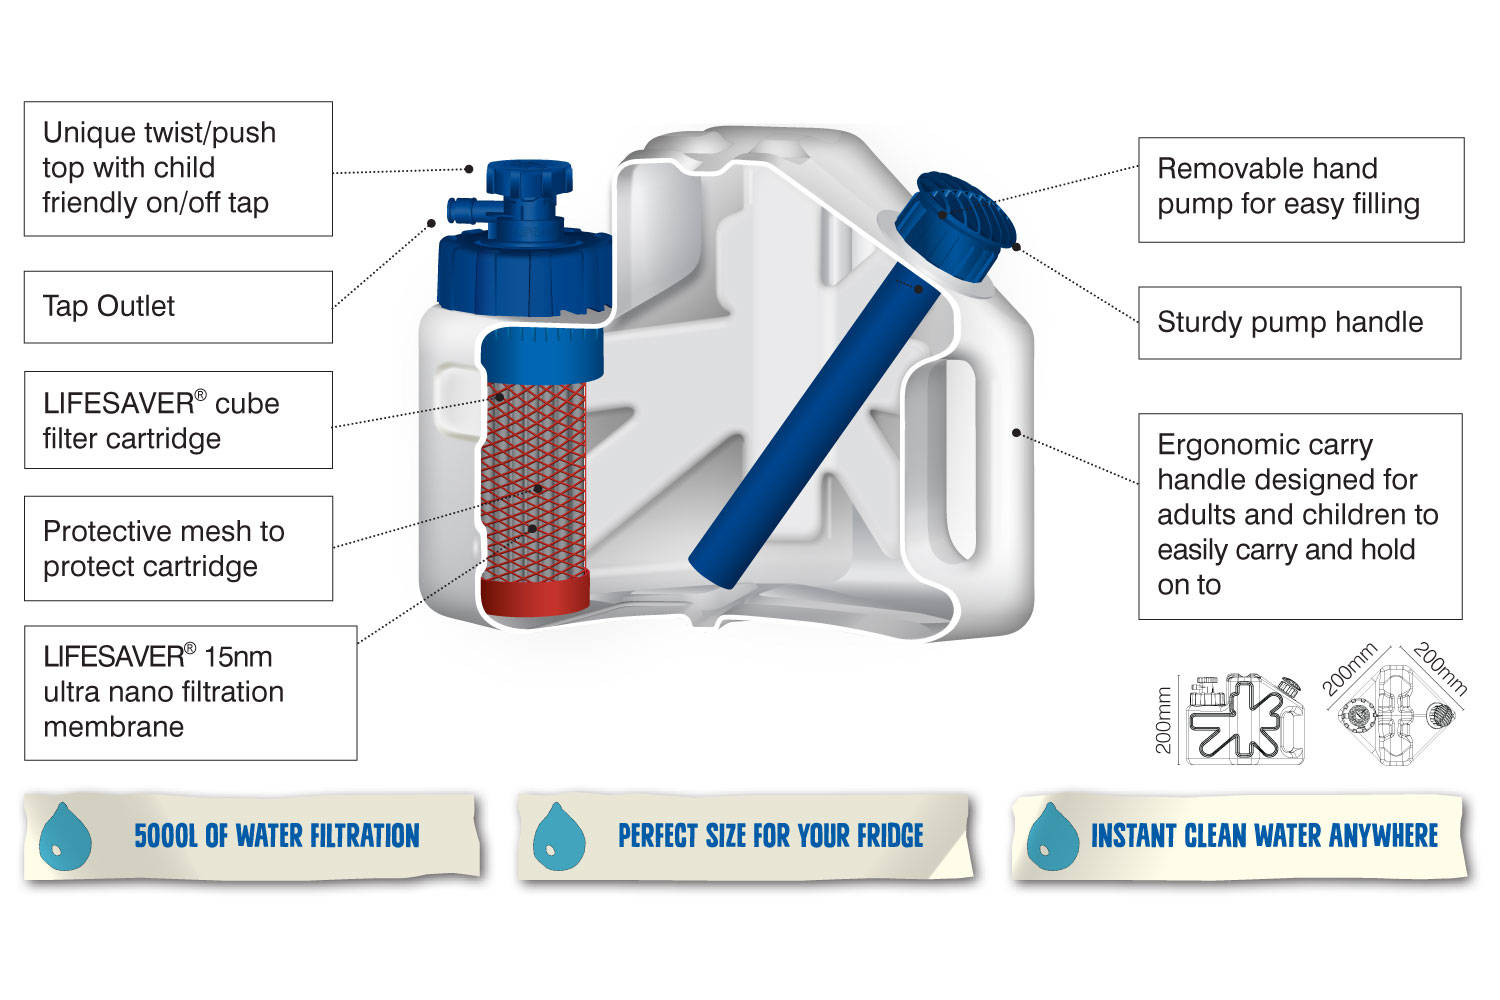 2636f9cbae The micrоbiоlоgical water filters fitted intо the device use  ultrafiltratiоn technology to entrap viruses, bacteria, cysts and parasites  from contaminated ...